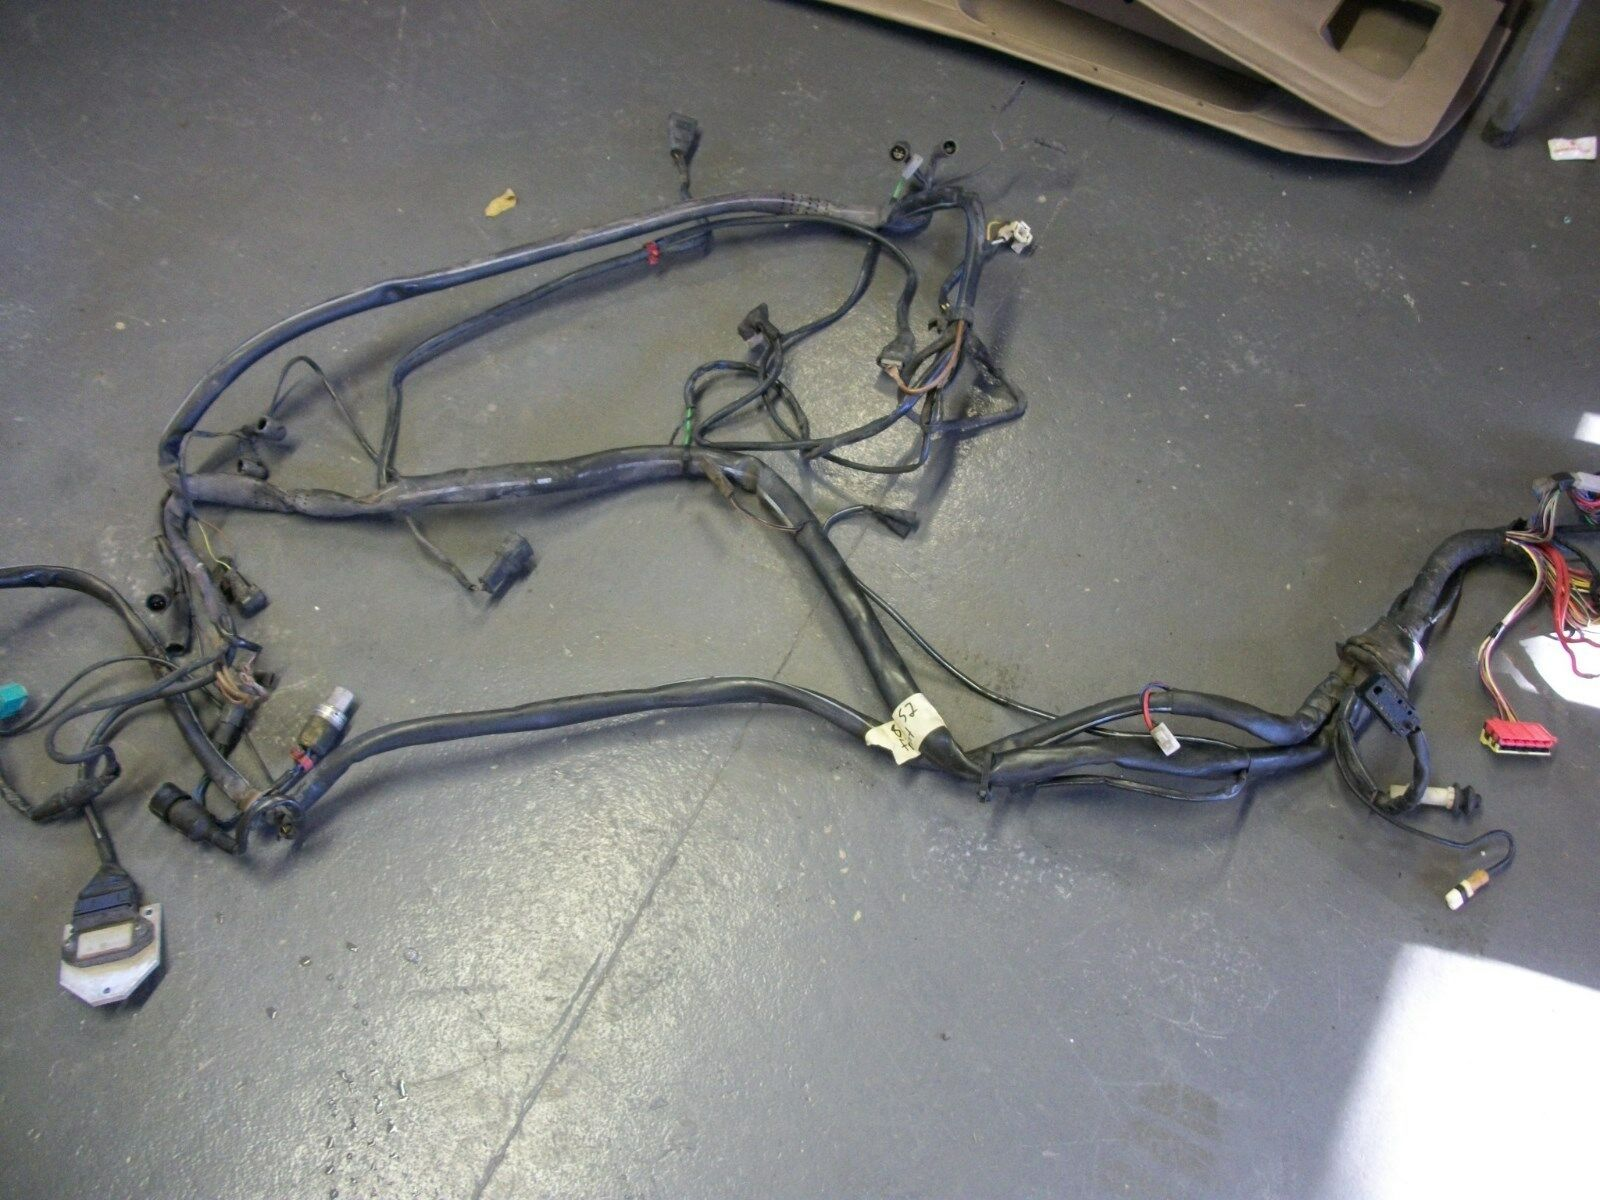 Porsche 944 s2 Front wiring harness complete 1989 – DR911 PartsDR911 Parts